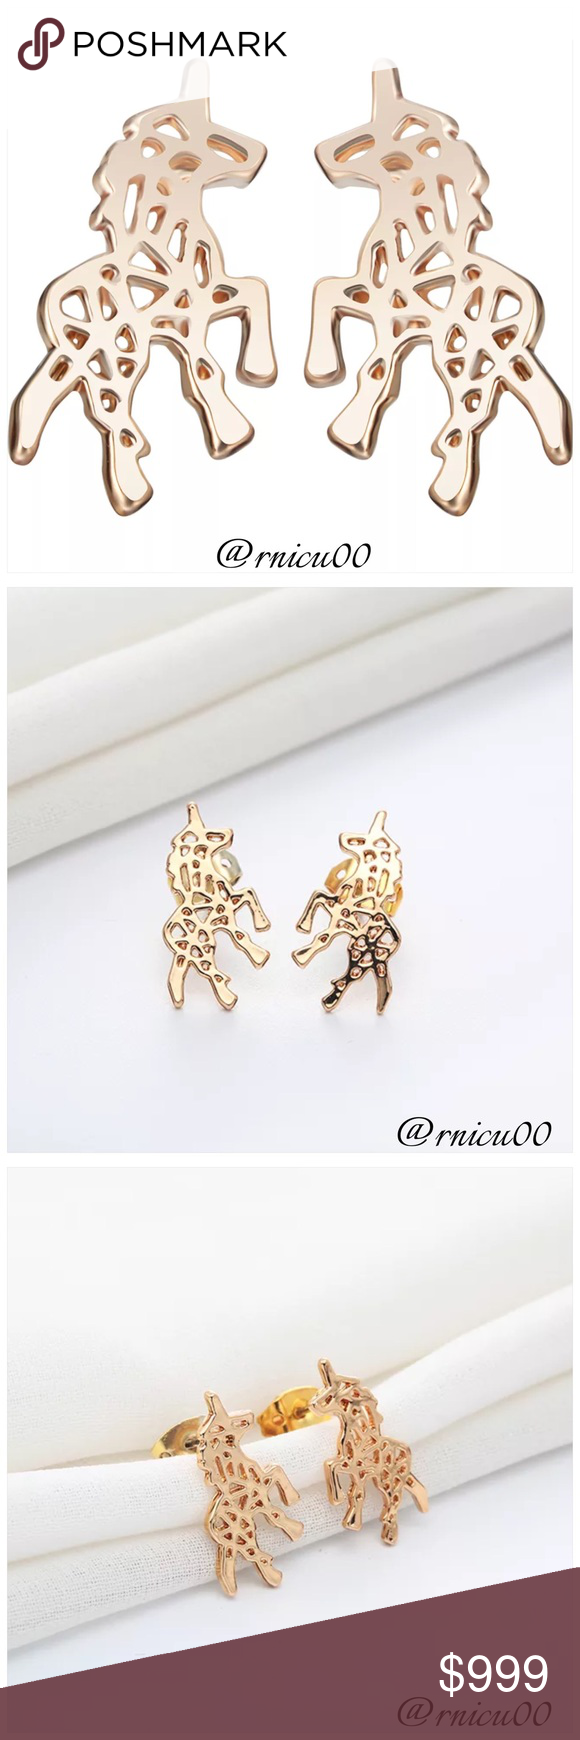 south imitation design plated indian online gold gamesndeals jewelry latest ring pure trendy ear zircon stud jhumkhi stone